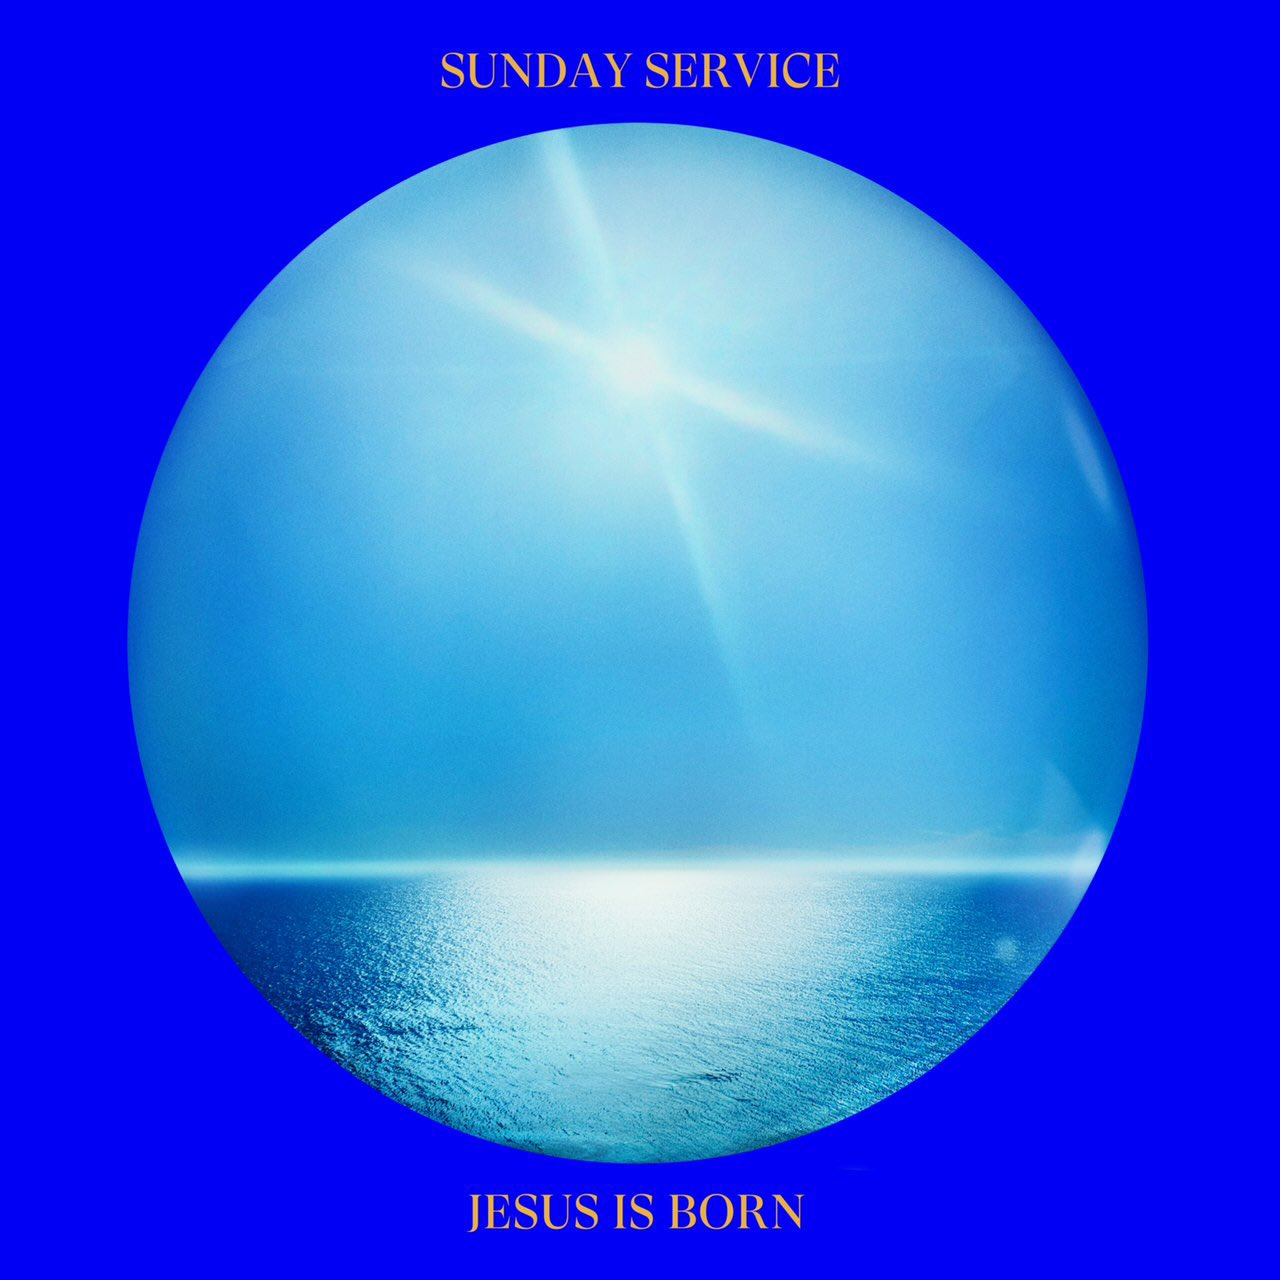 kanye west sunday service jesus is born